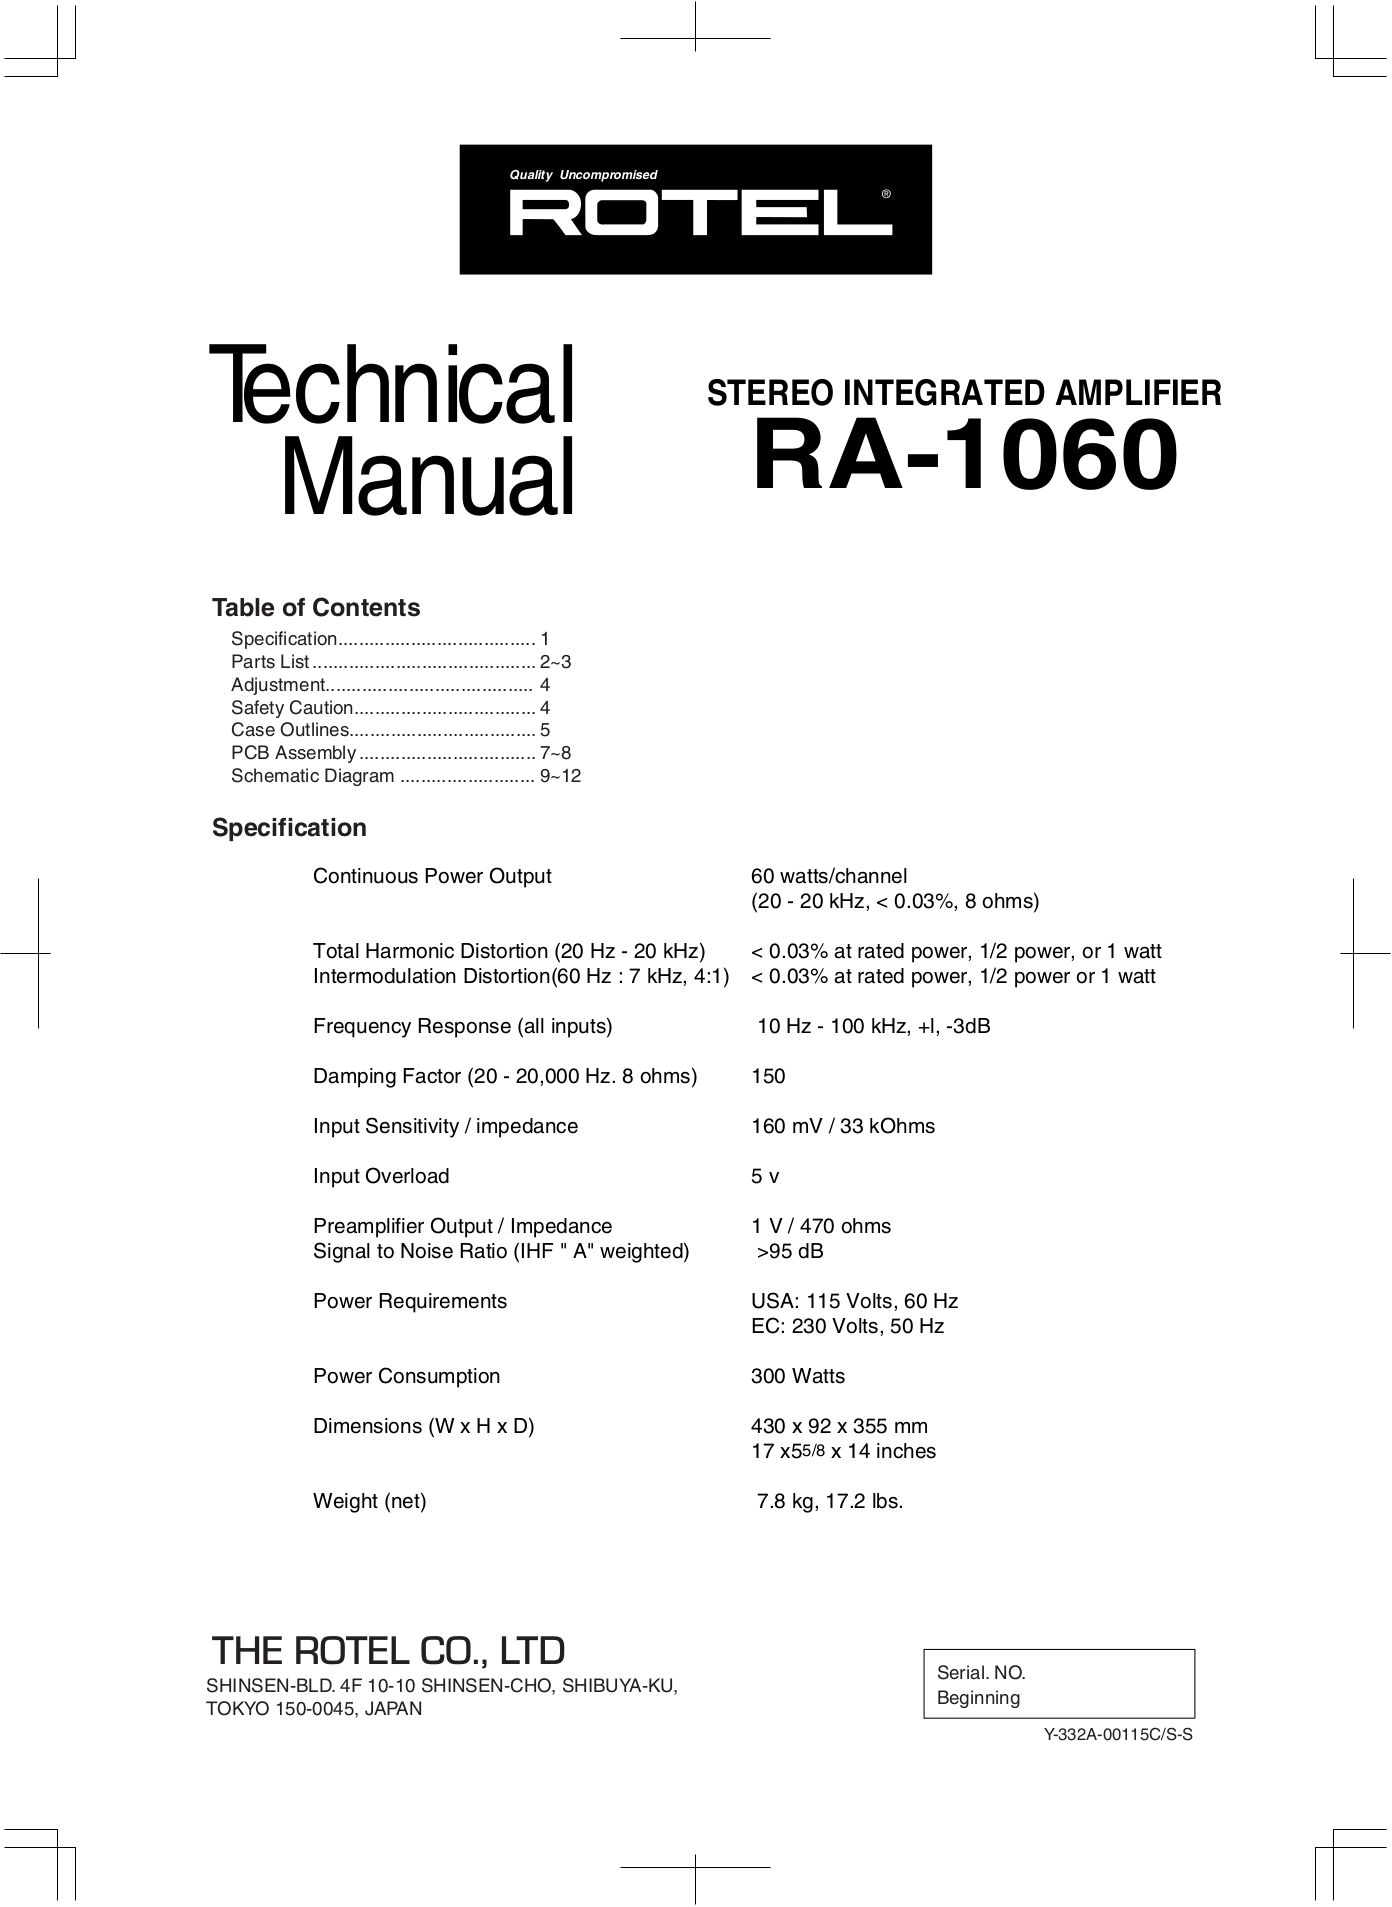 Kavo 1060 pdf download